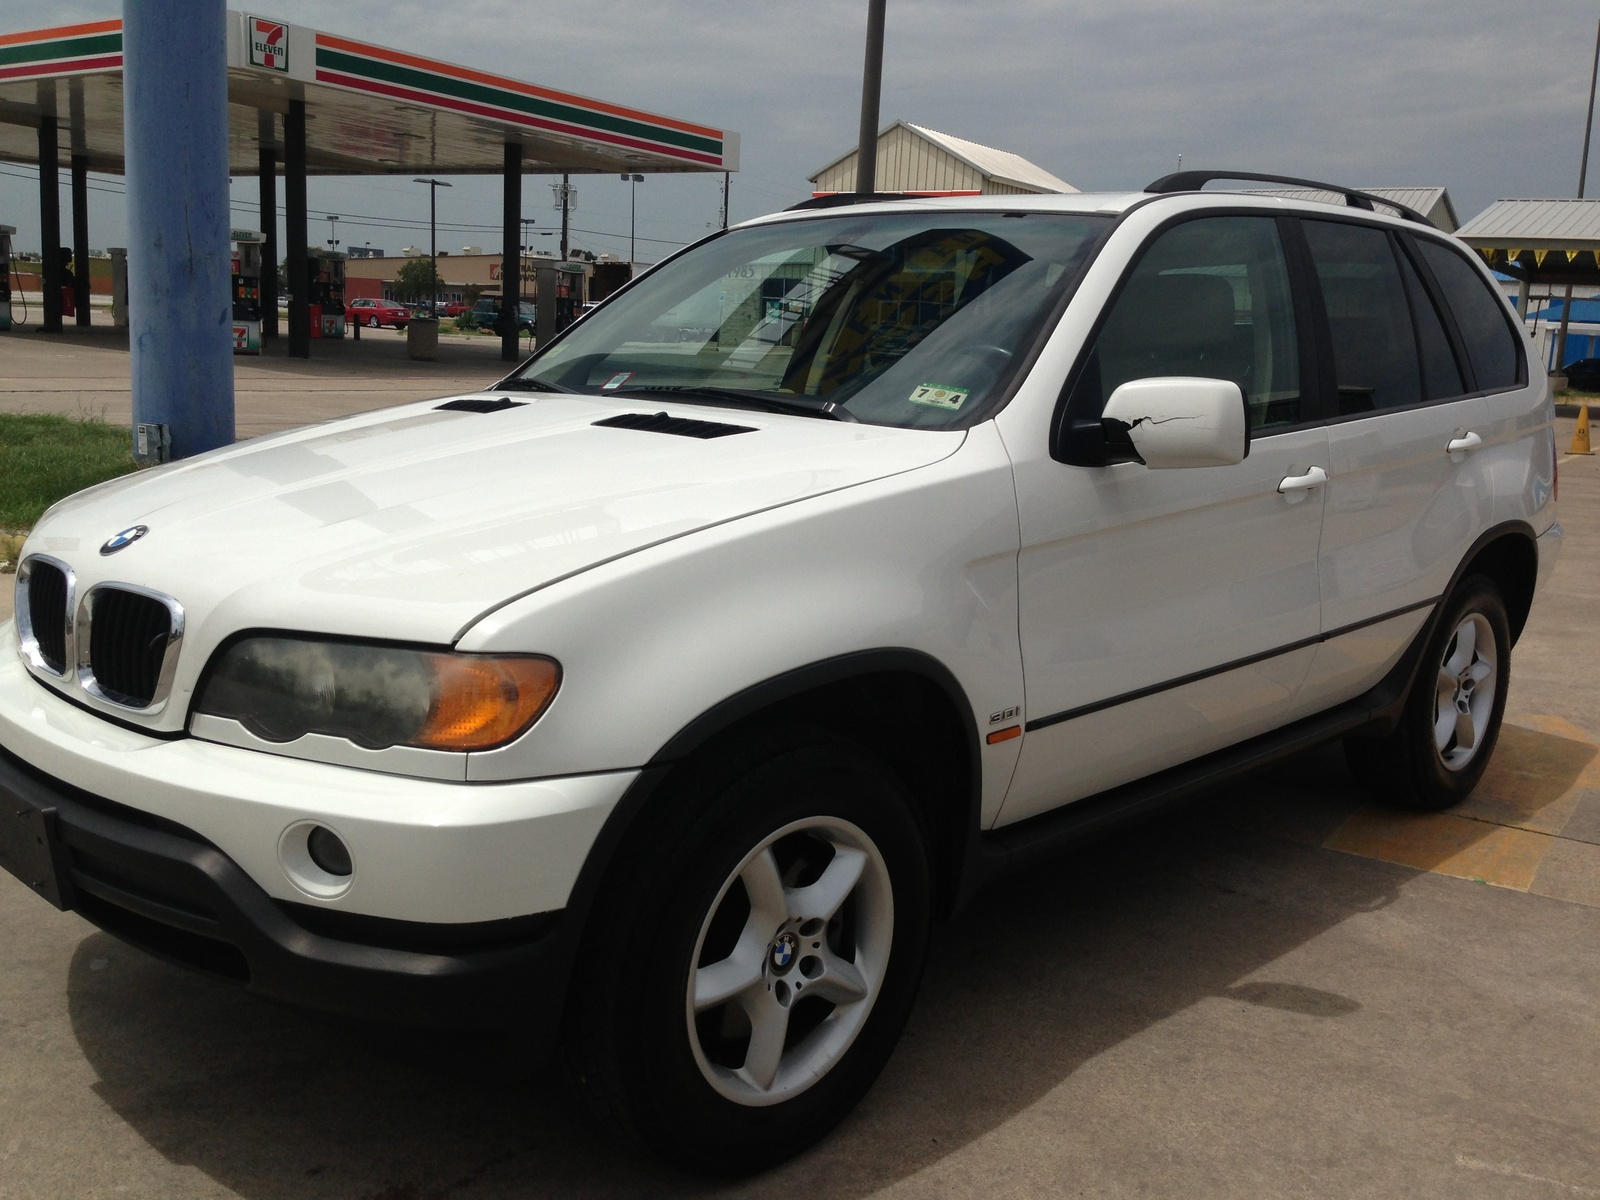 2003 Bmw X5 - Pictures